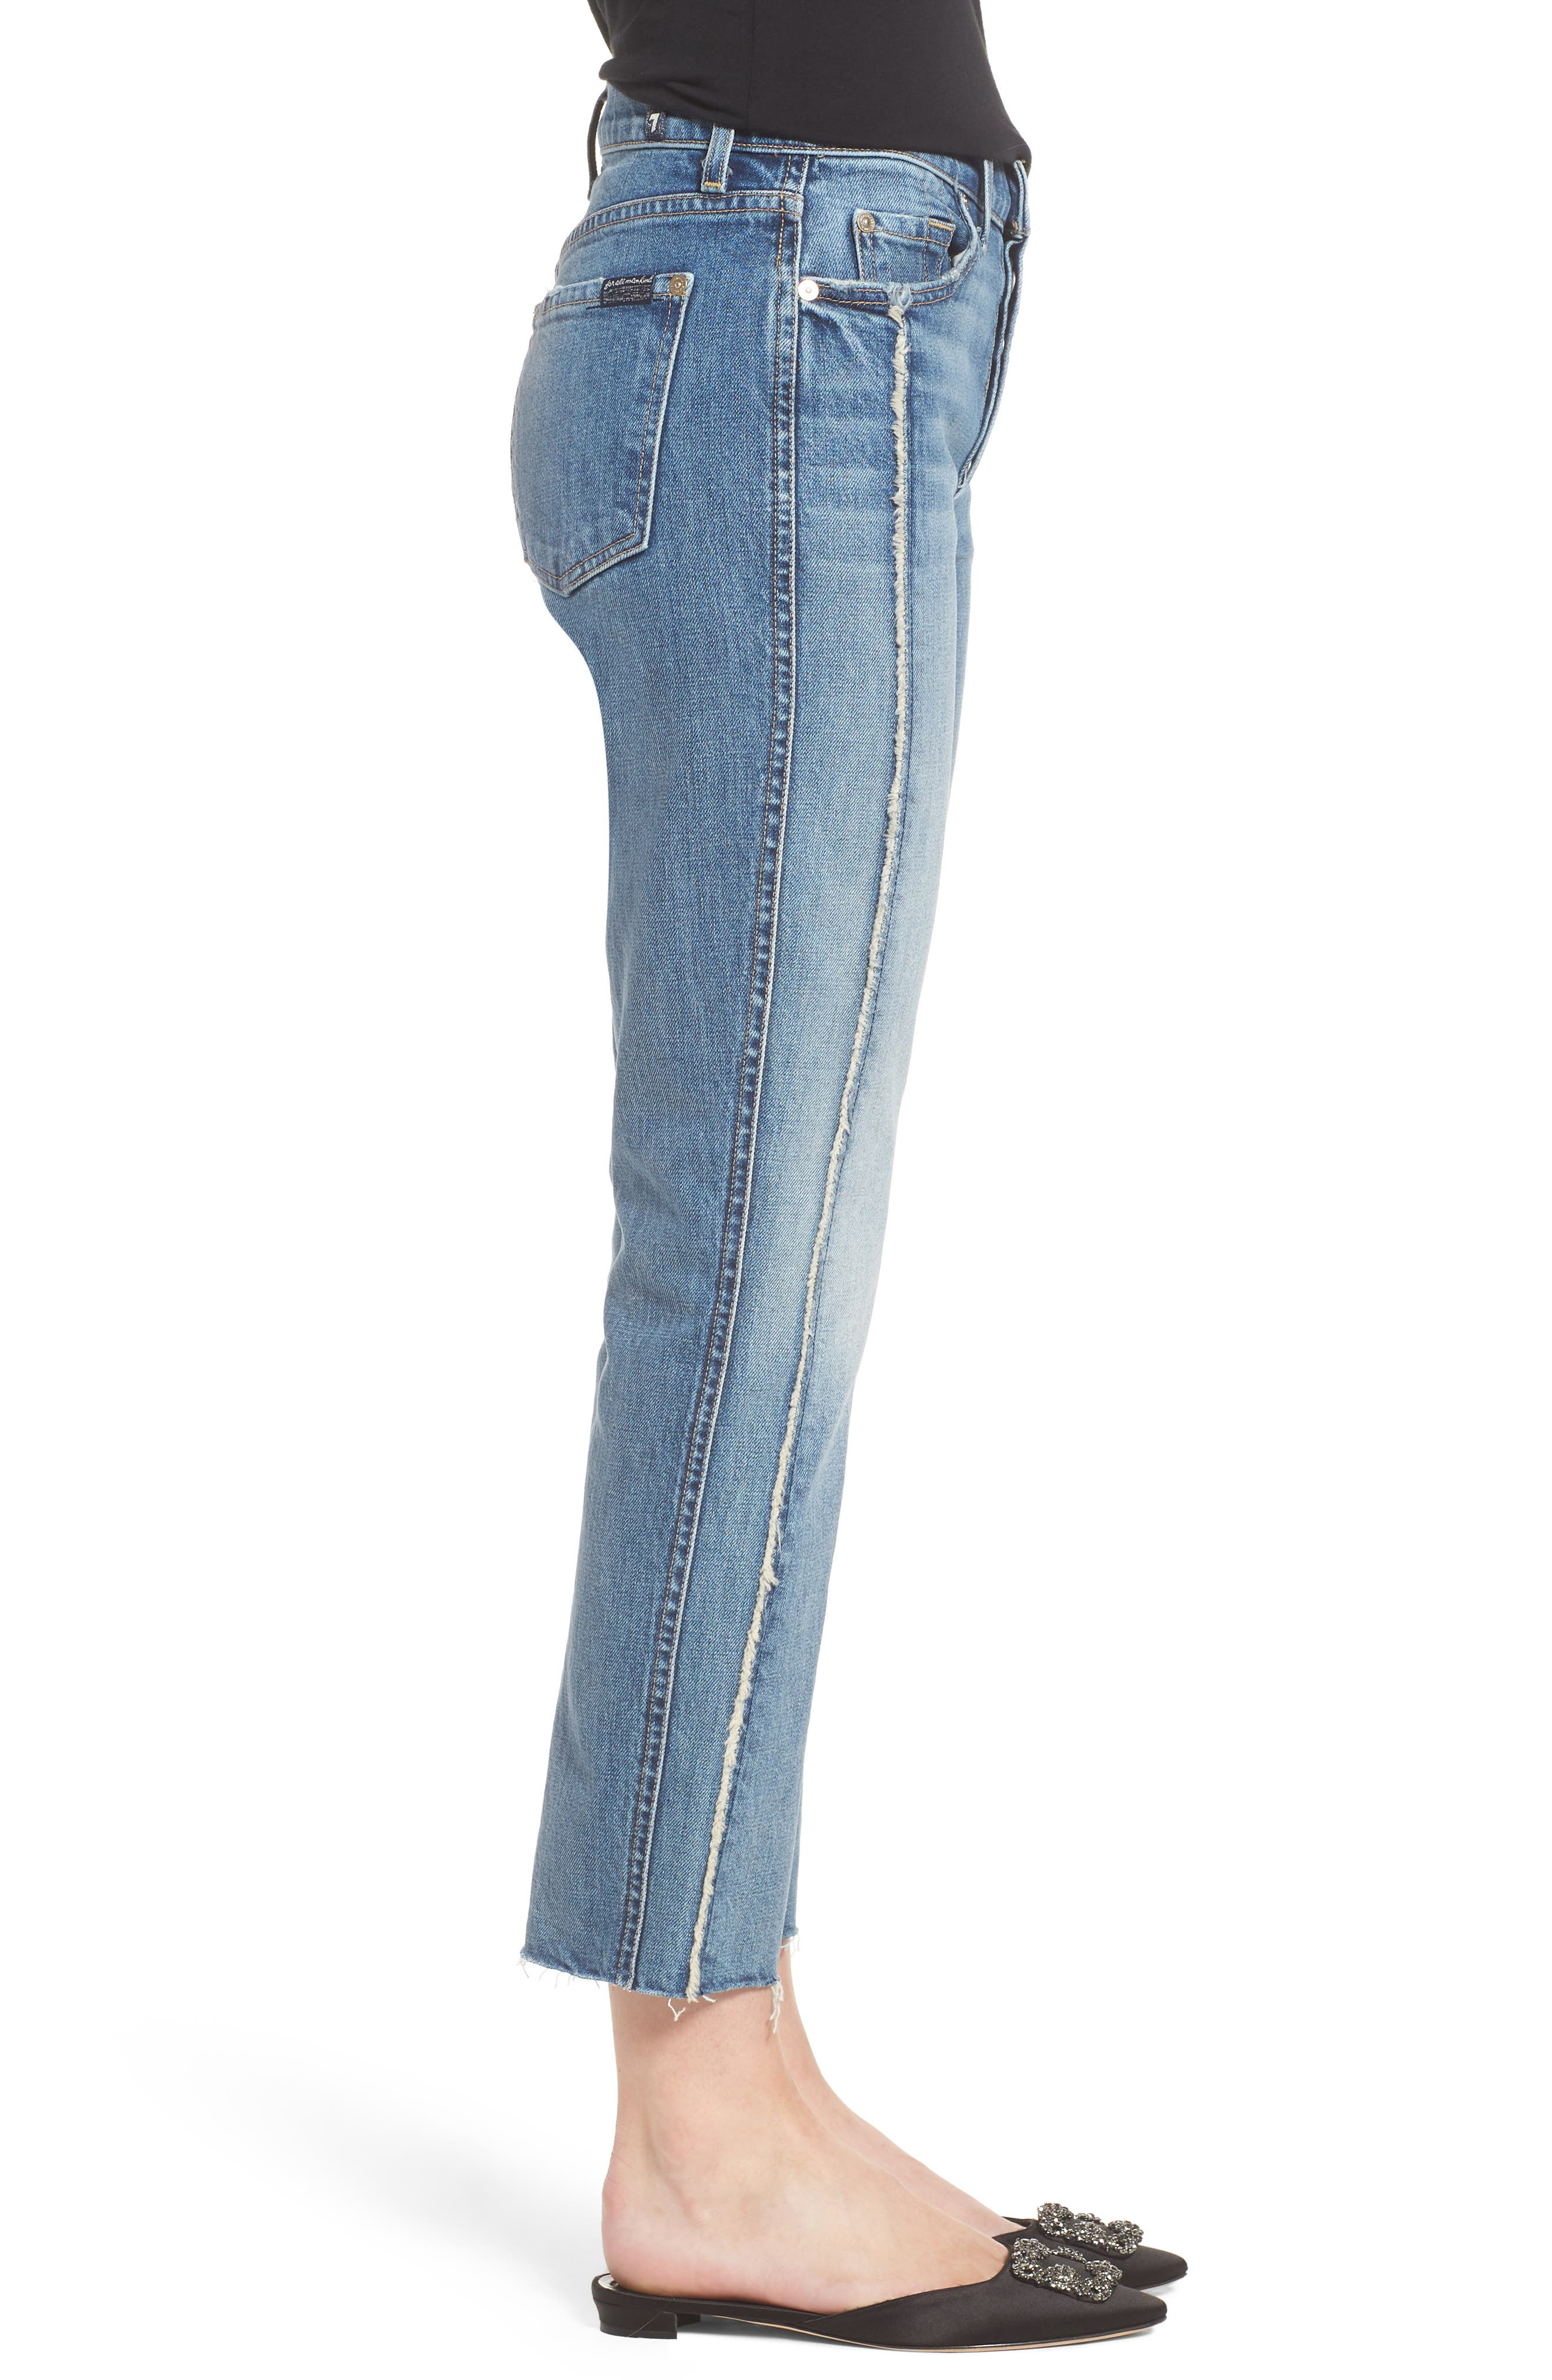 Edie Fray Seams Crop Straight Leg Jeans,                             Alternate thumbnail 3, color,                             400